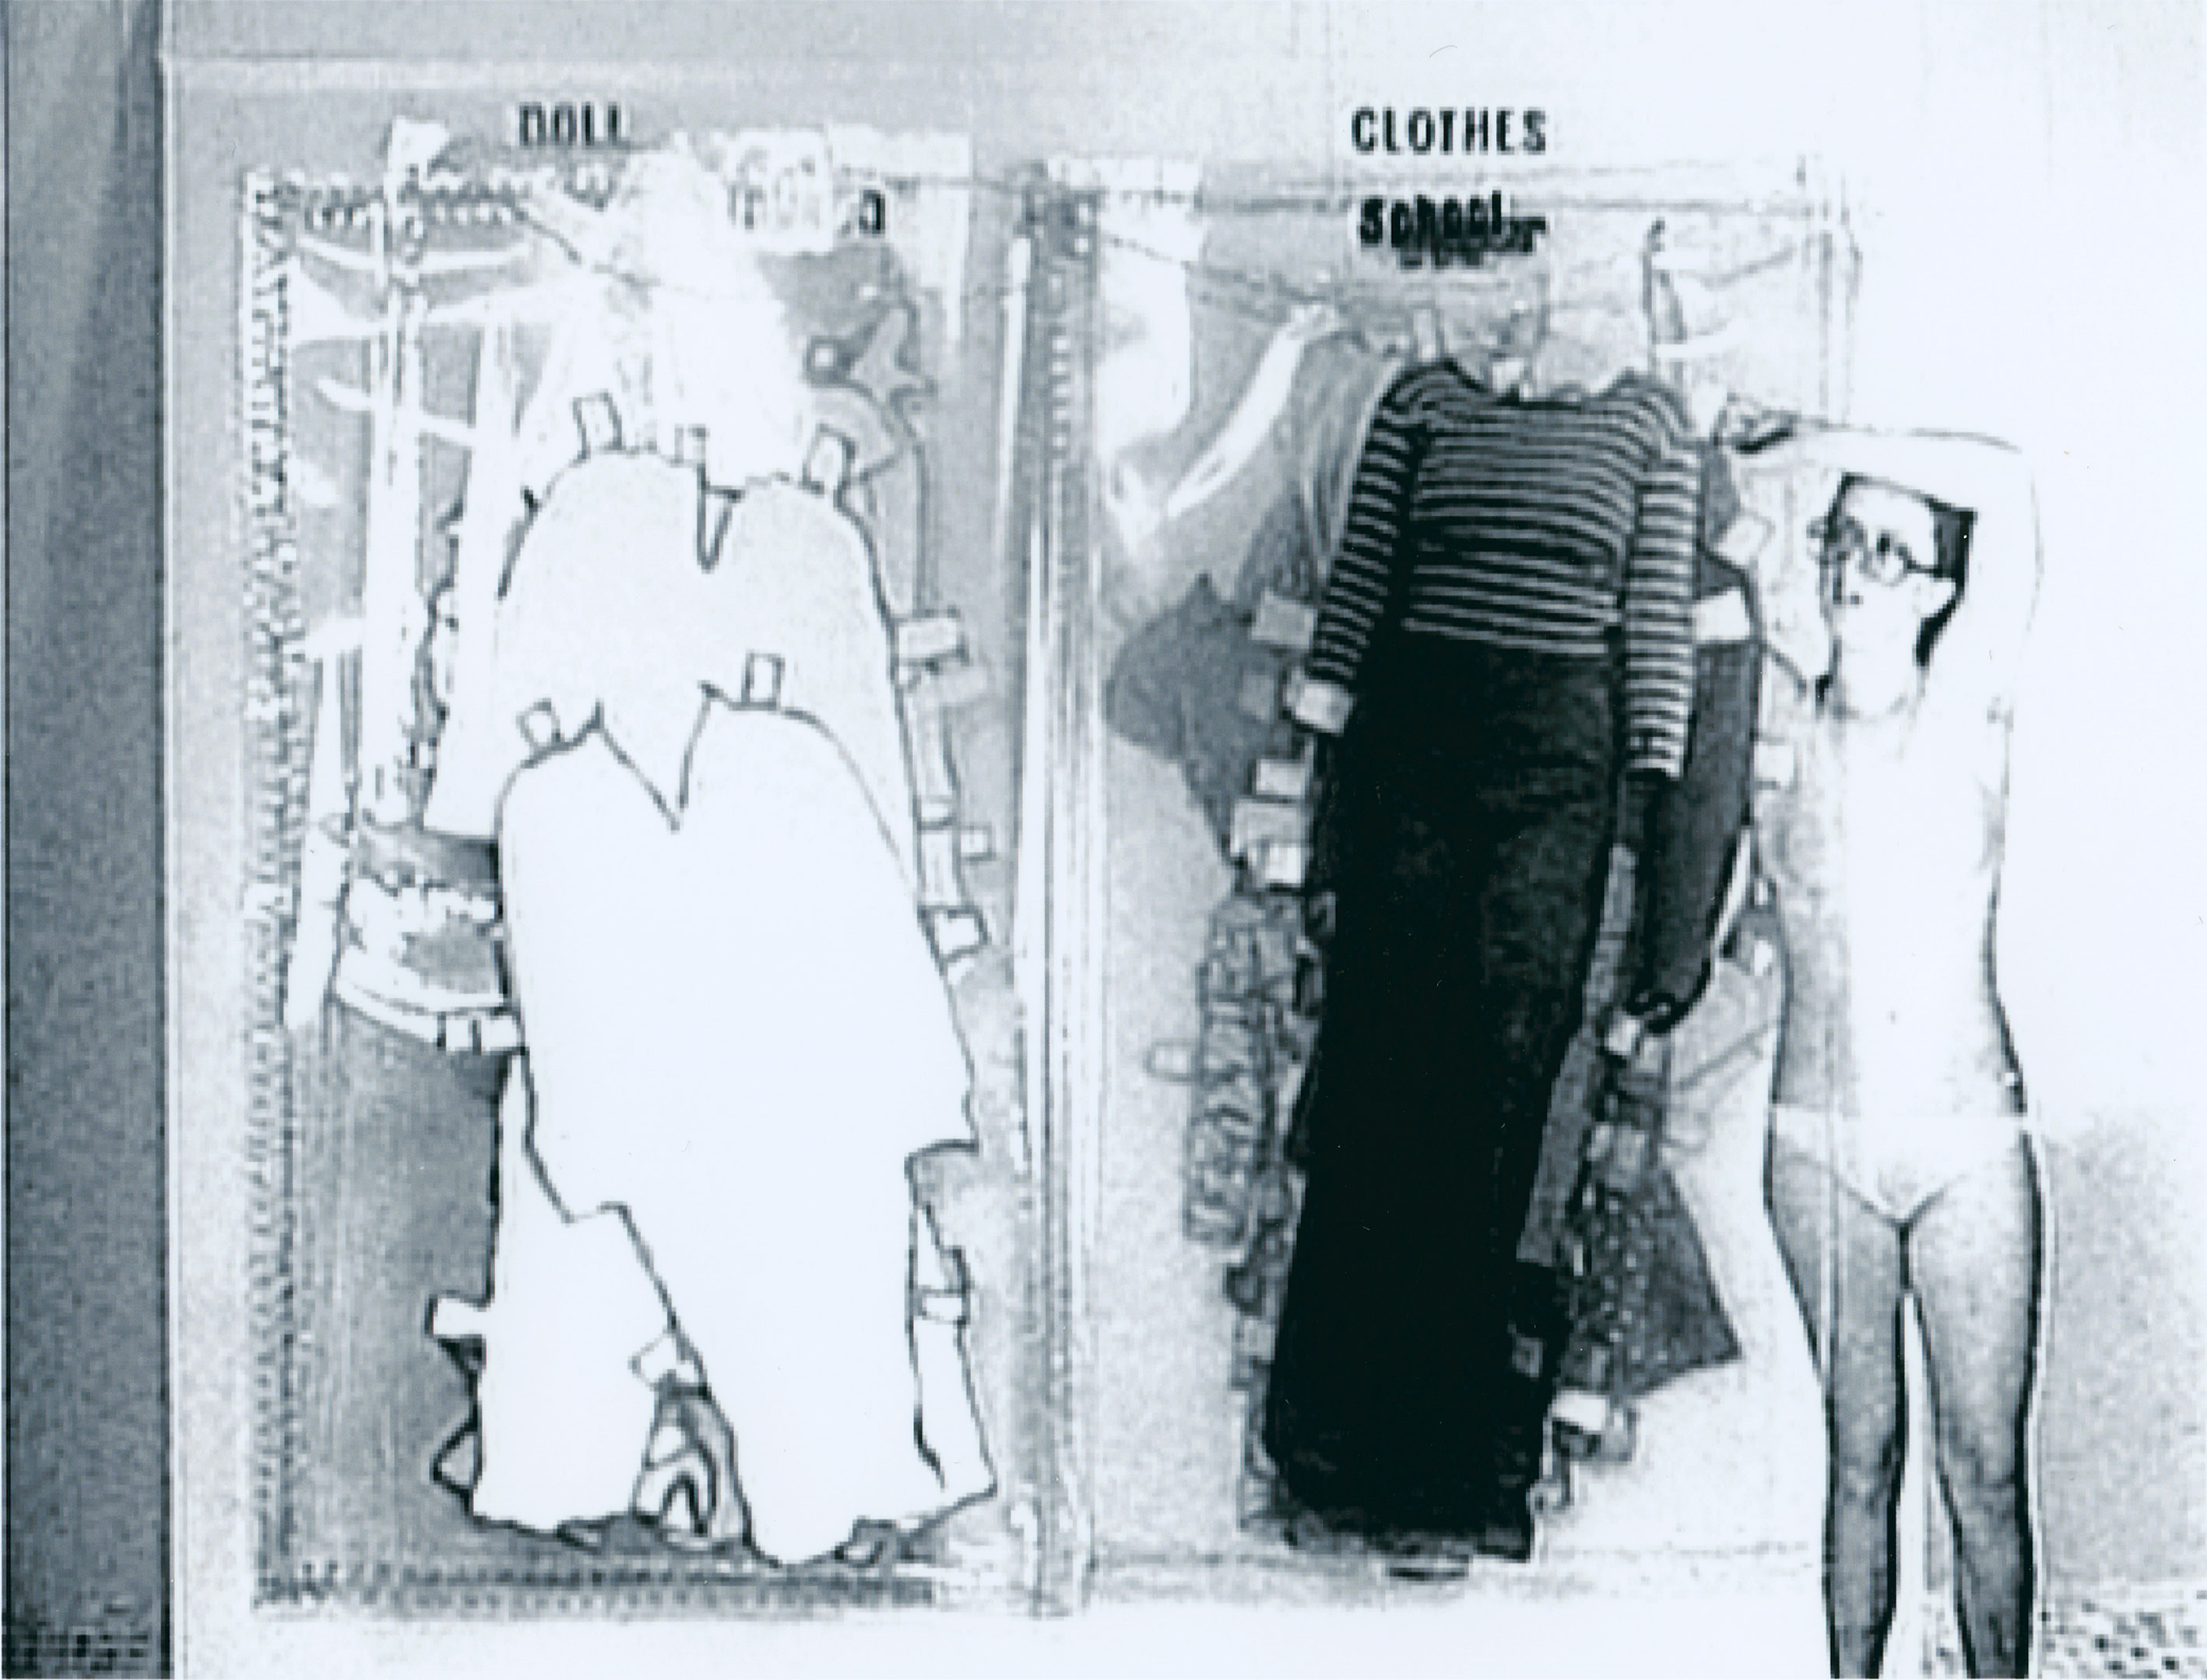 Cindy Sherman, Doll Clothes, 1975, 16-mm film transferred to DVD, Black and white, silent, 2:22 min, loop, © Cindy Sherman